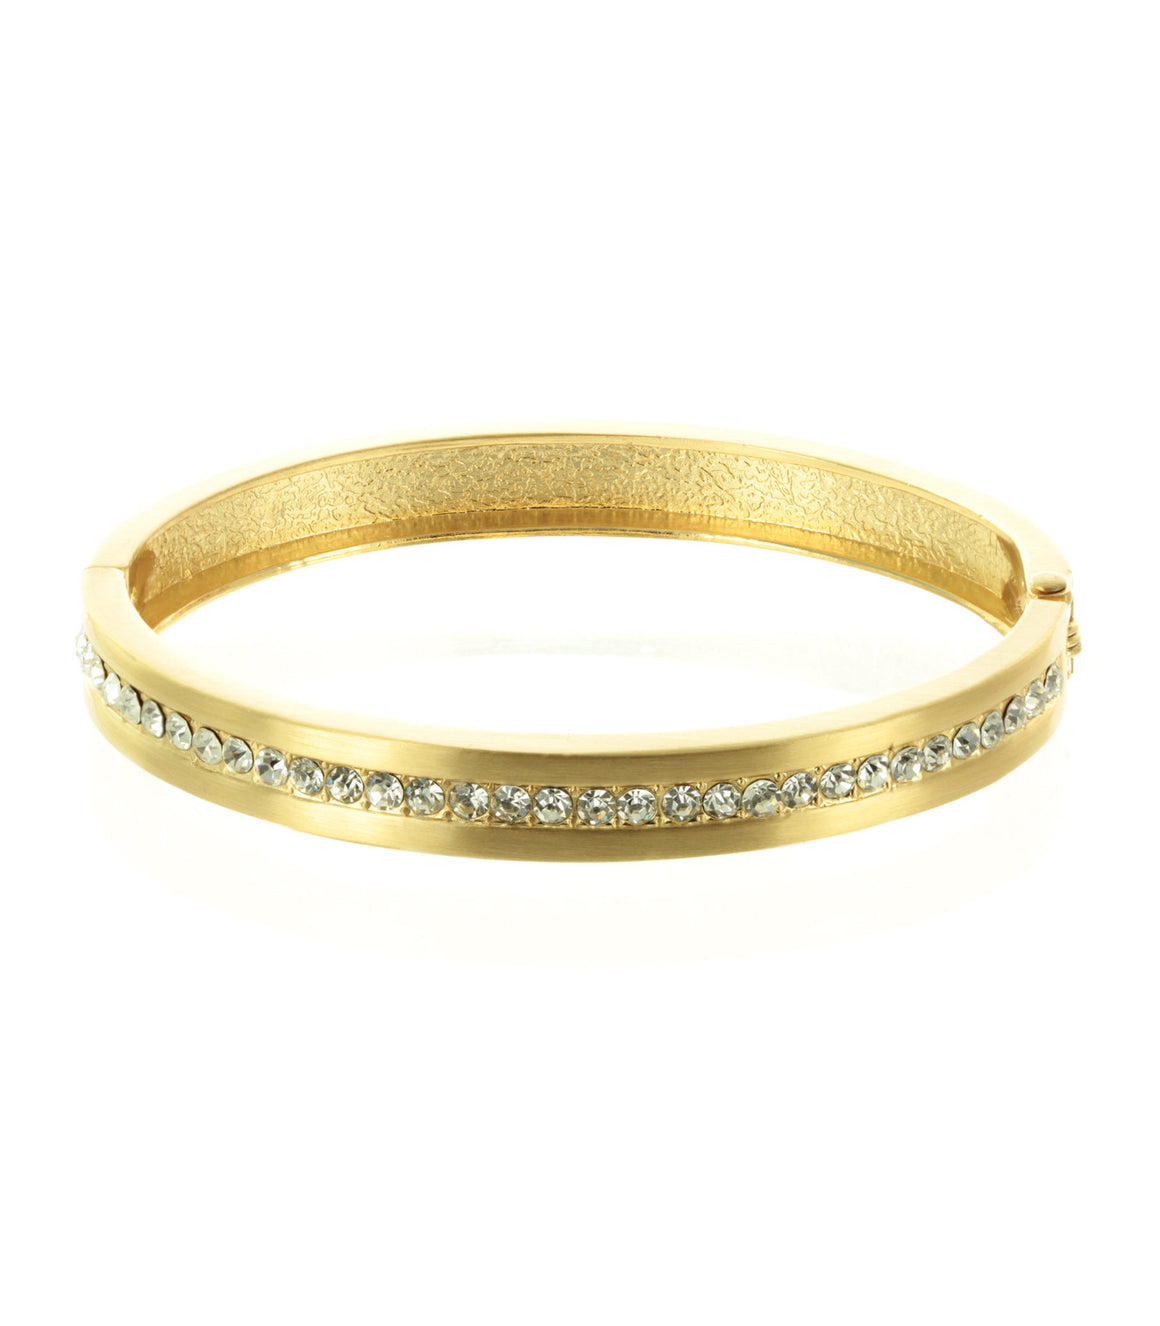 Preppy rhinestone gold bangle